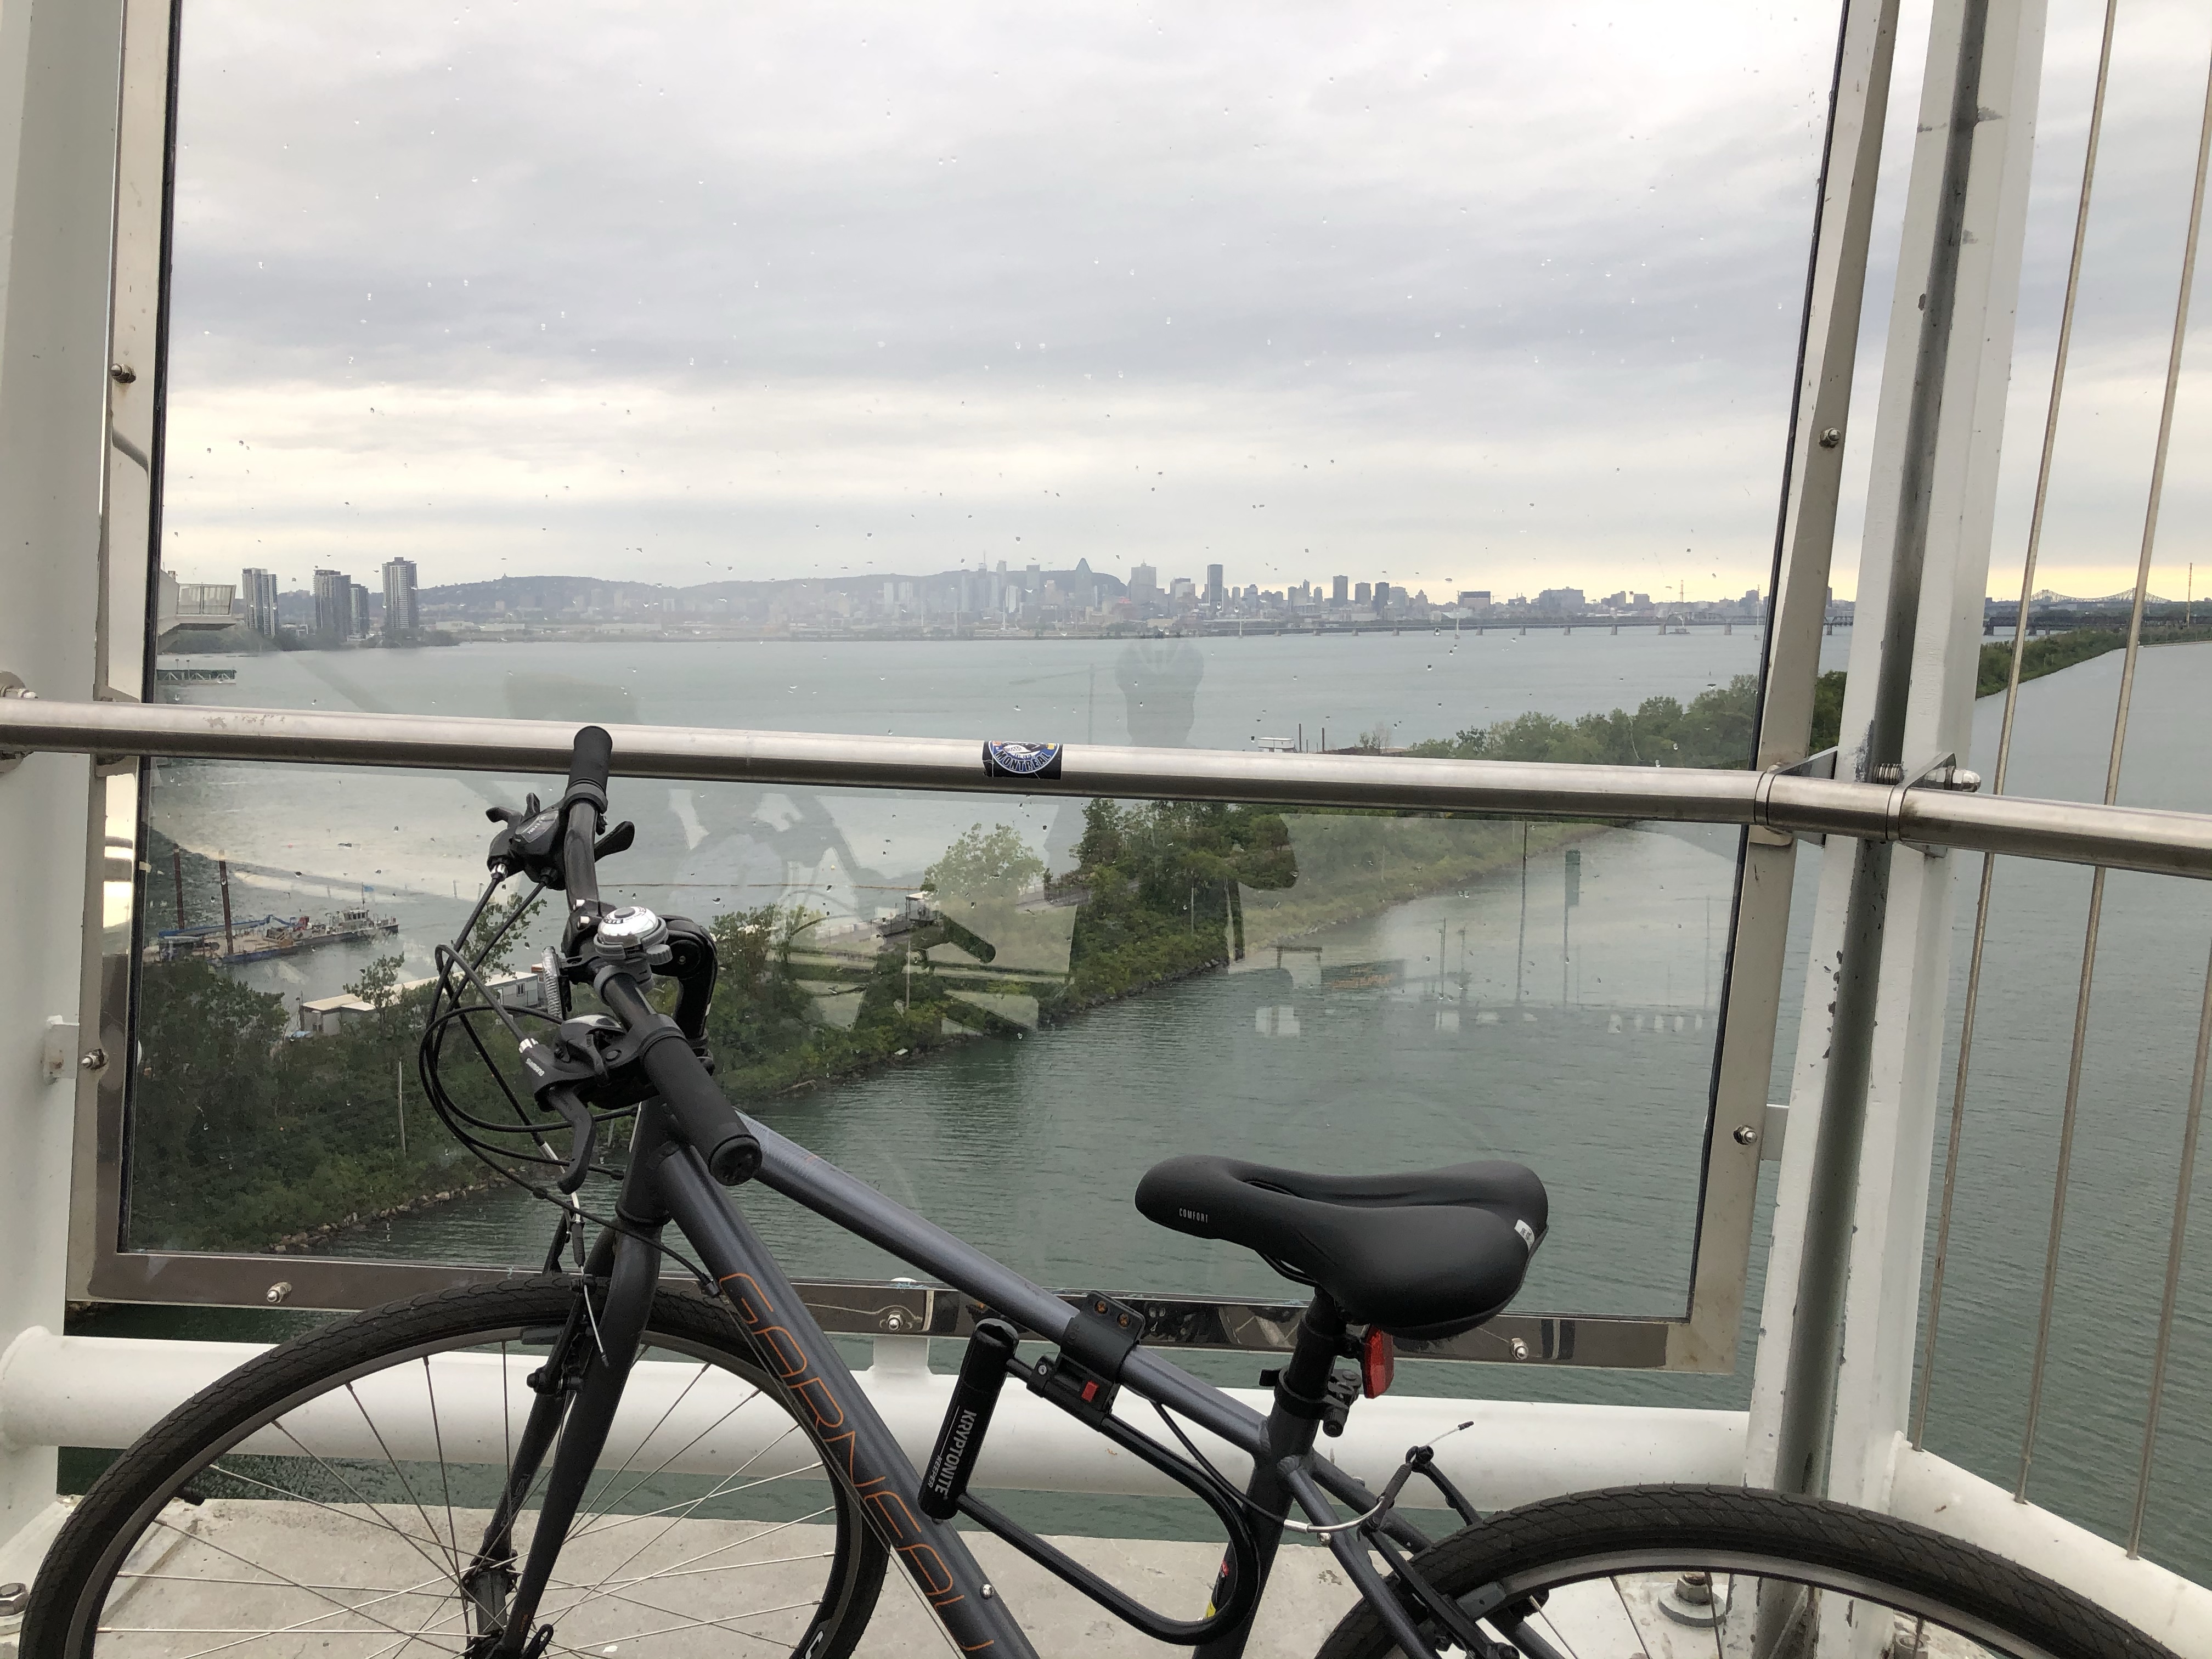 Crossing the Champlain Bridge by Bike